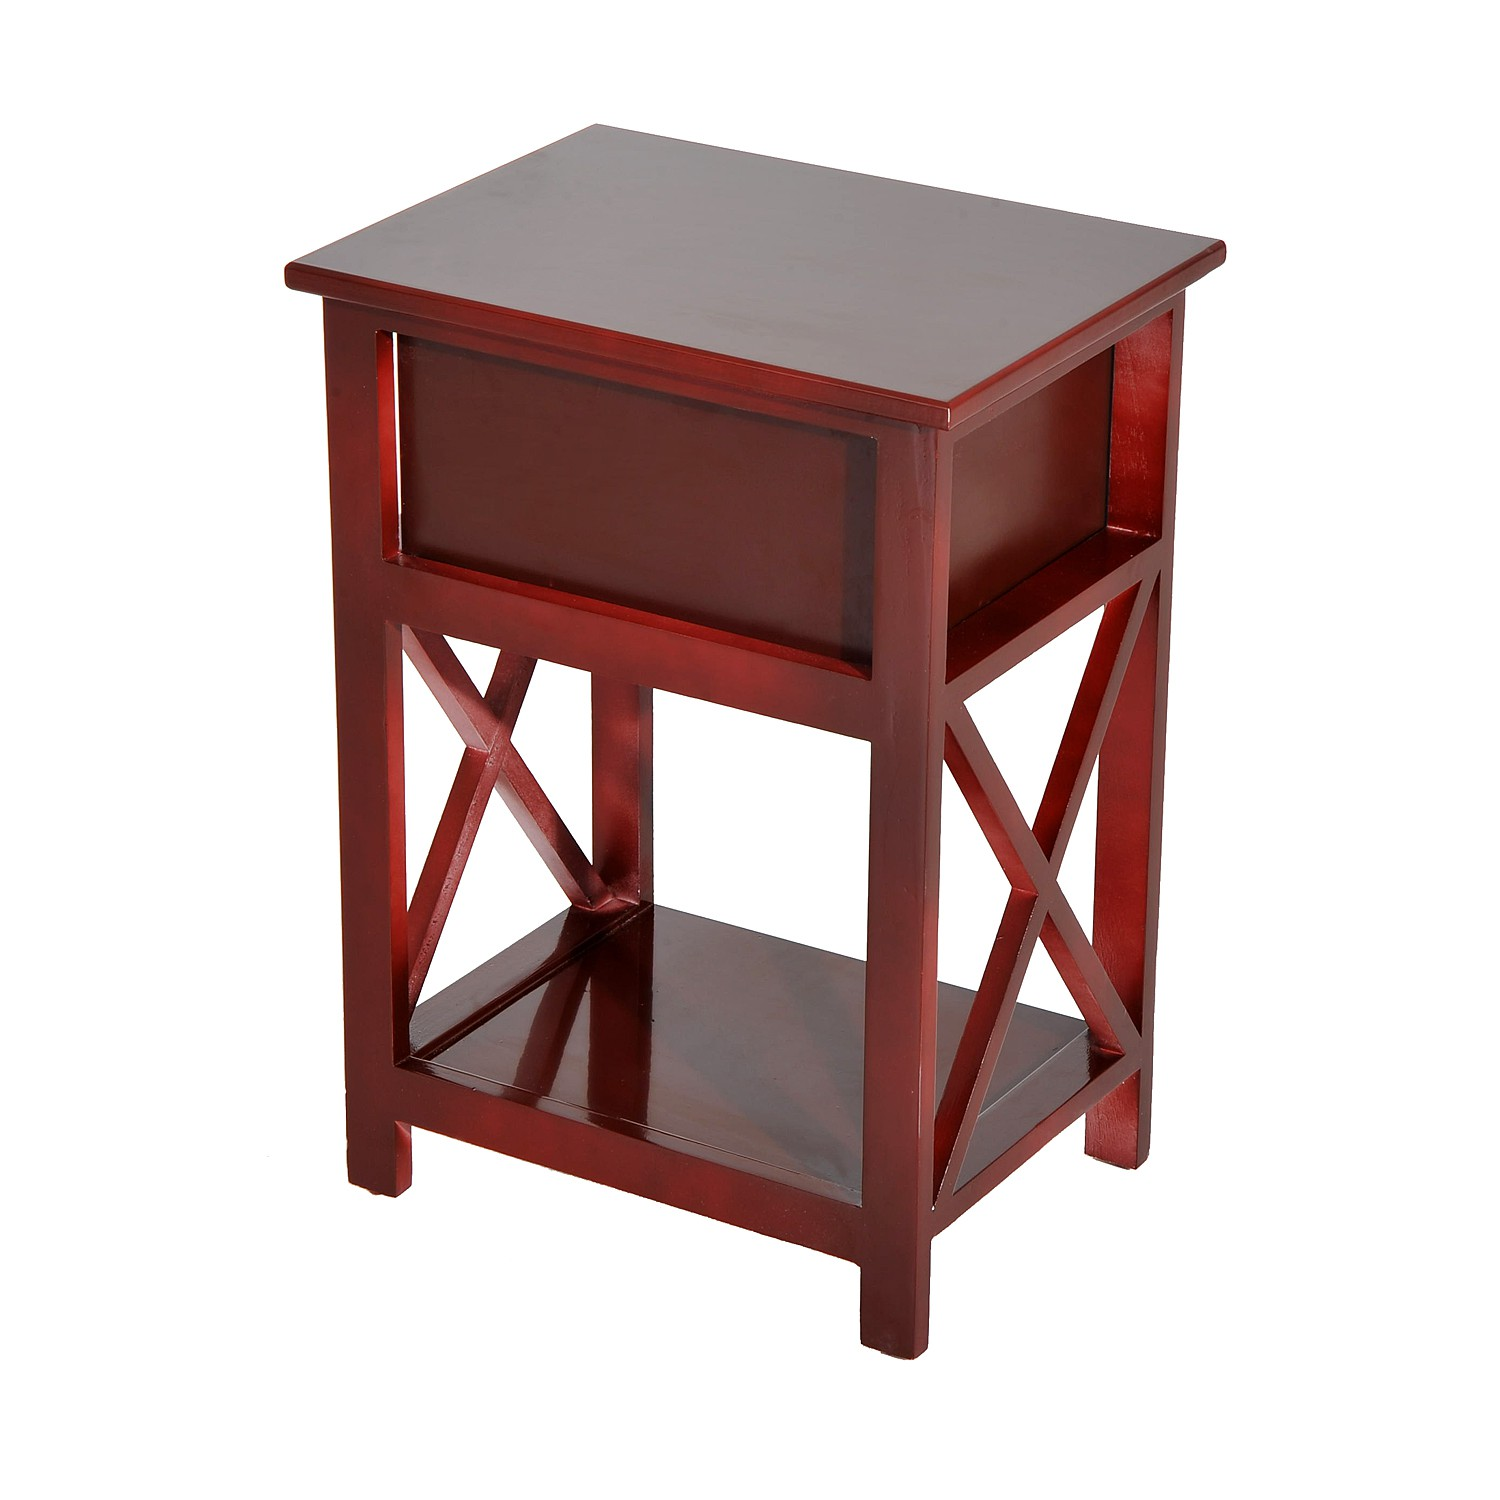 home goods end tables furniture design large accent including tablecloth round cocktail table cloths mini tiffany lamps ikea outdoor funky bedside side for numeral wall clock pier